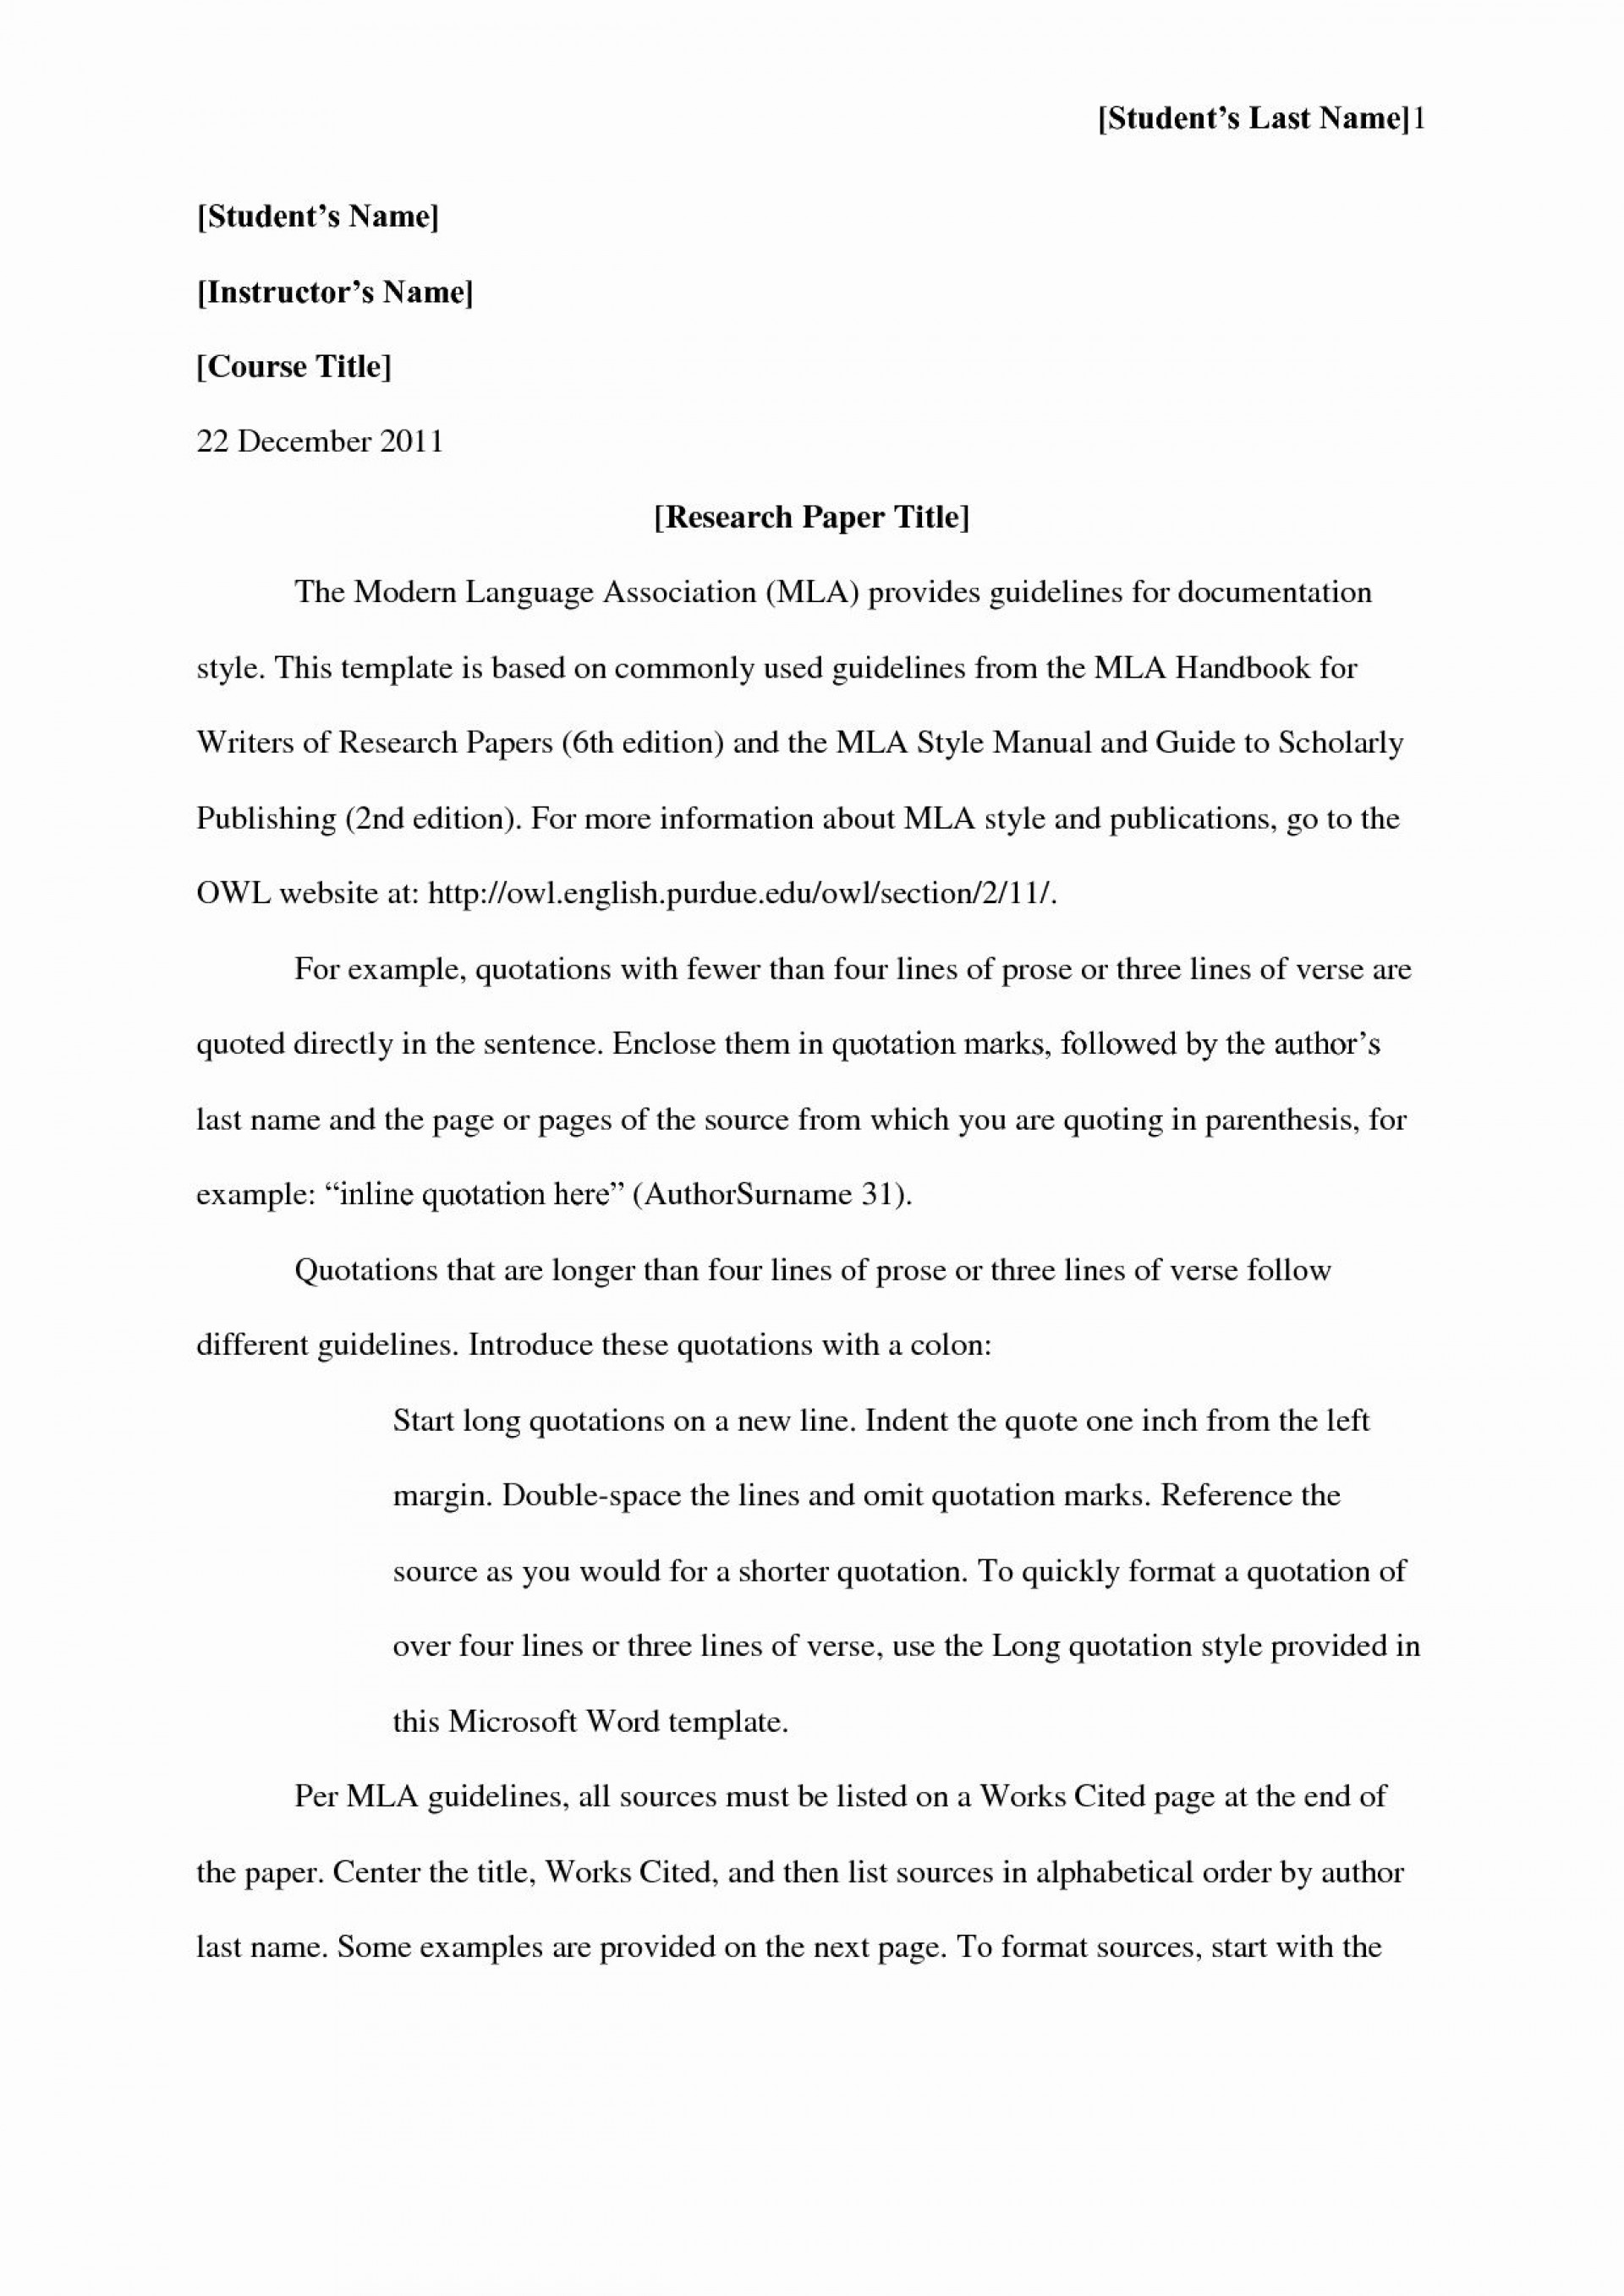 012 Mla Title Page Template Awesome Format Works Cited Scarlet Letter Best Of Apa Style Essay Research Impressive Reference Example Generator Sample 1920